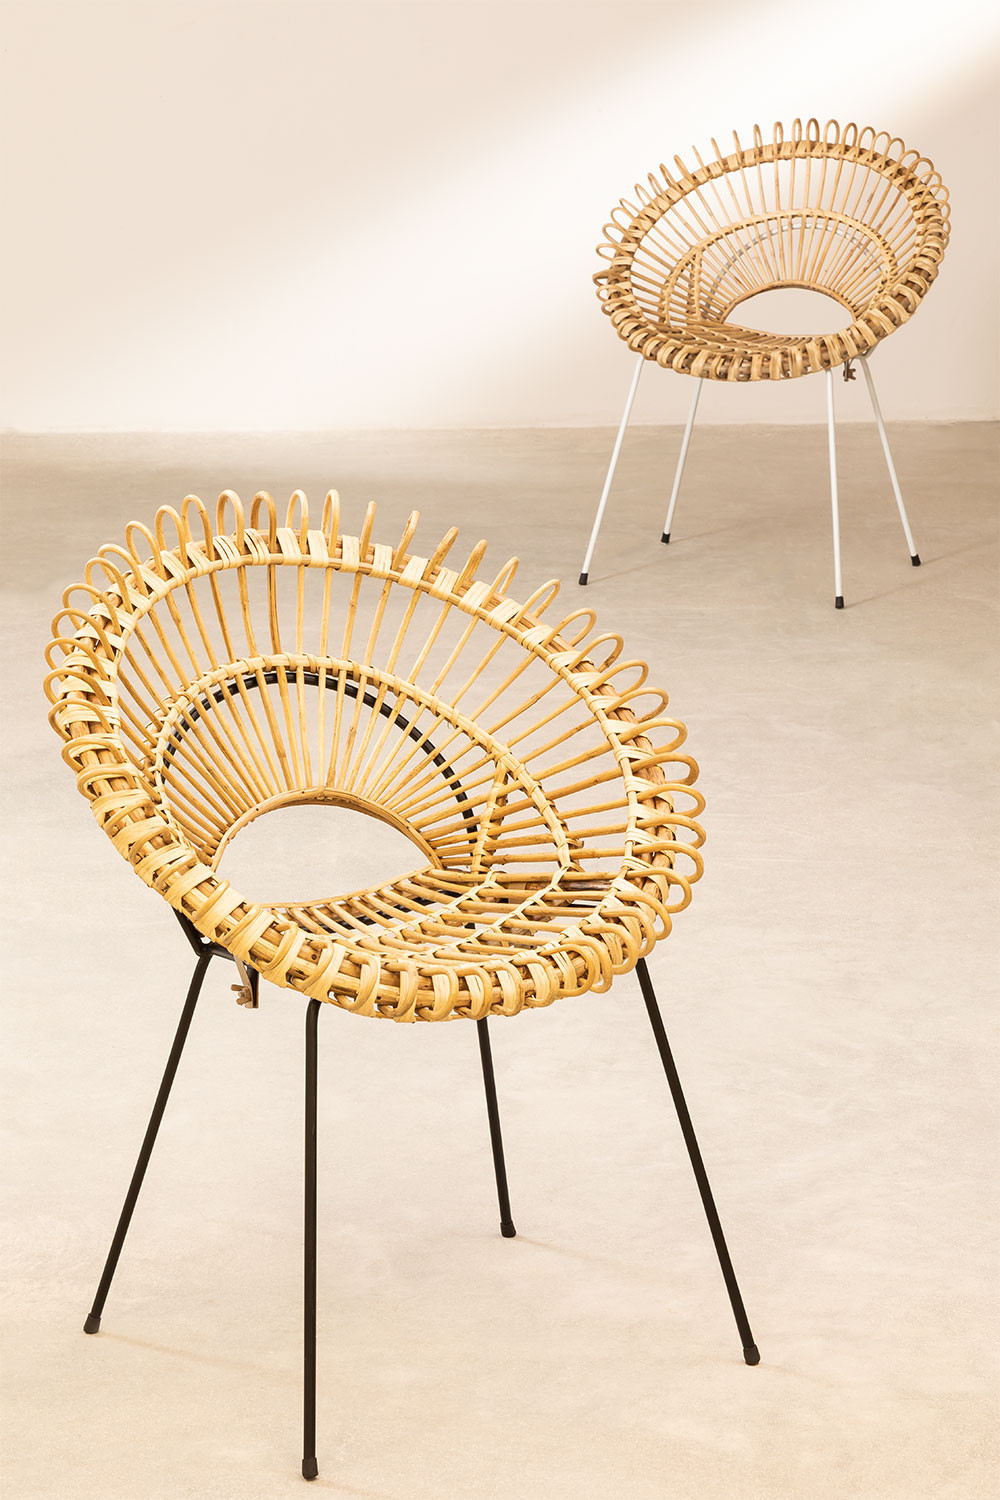 Decorative Chair Quer, gallery image 1